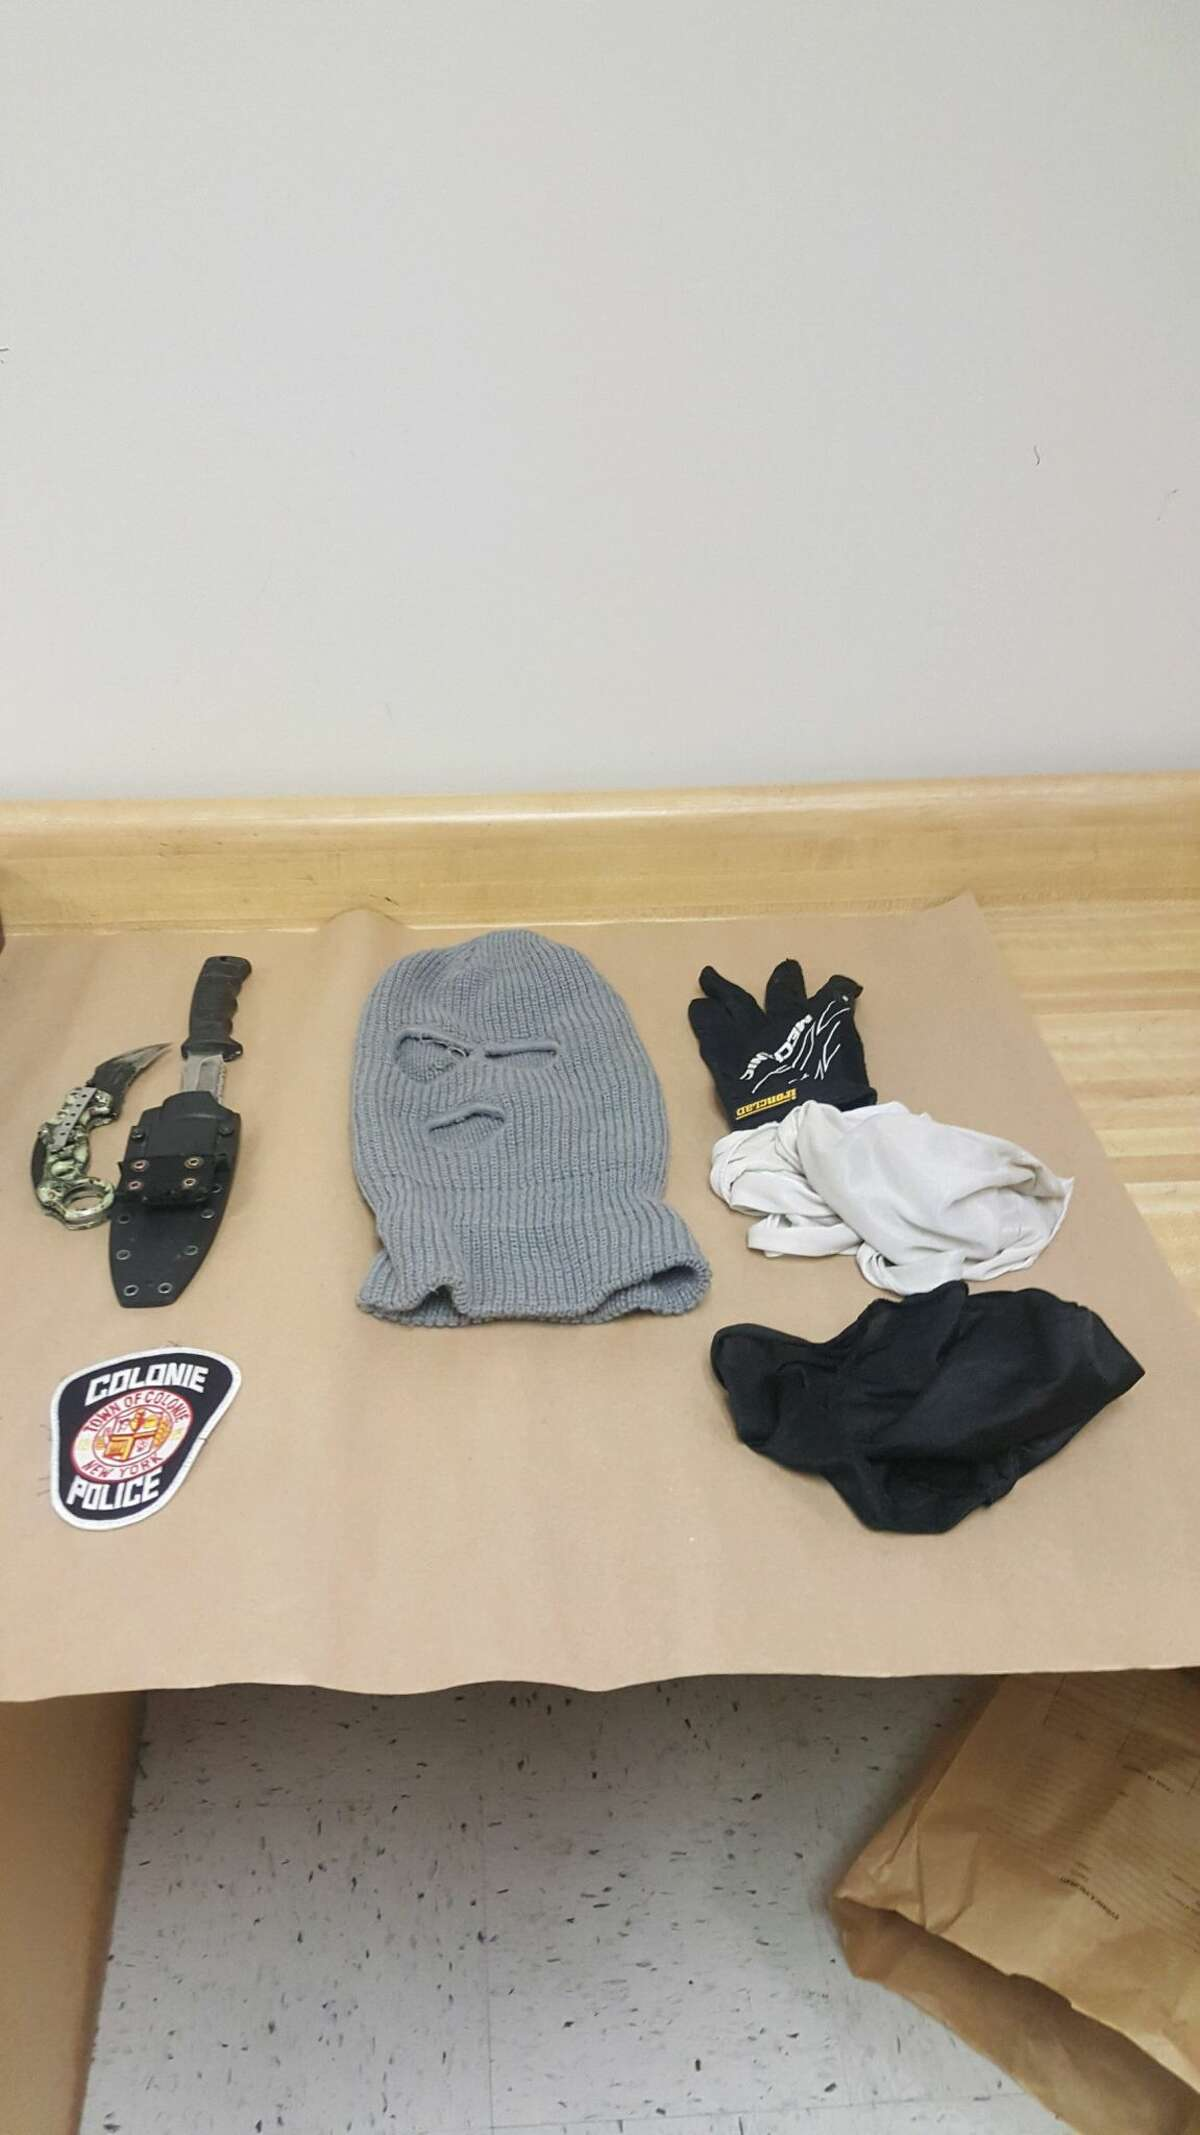 Colonie Police said they recovered two weapons, ammunition and drugs after an early morning traffic stop. Colonie Police said they recovered two weapons, ammunition and drugs after an early morning traffic stop.